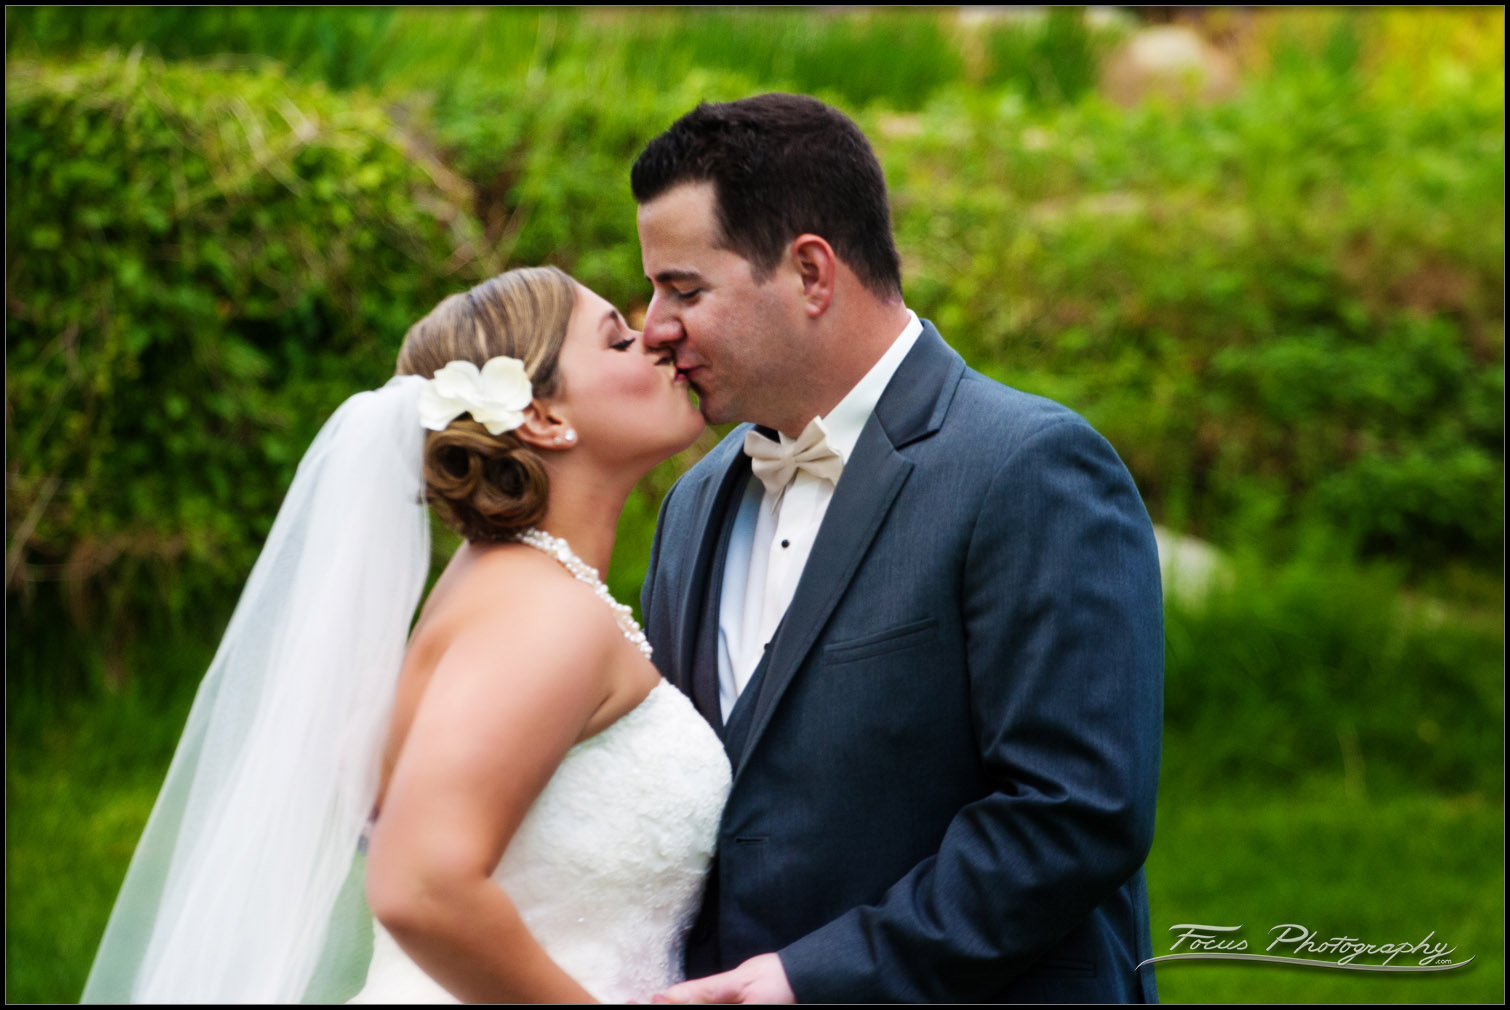 a kiss during wedding photos